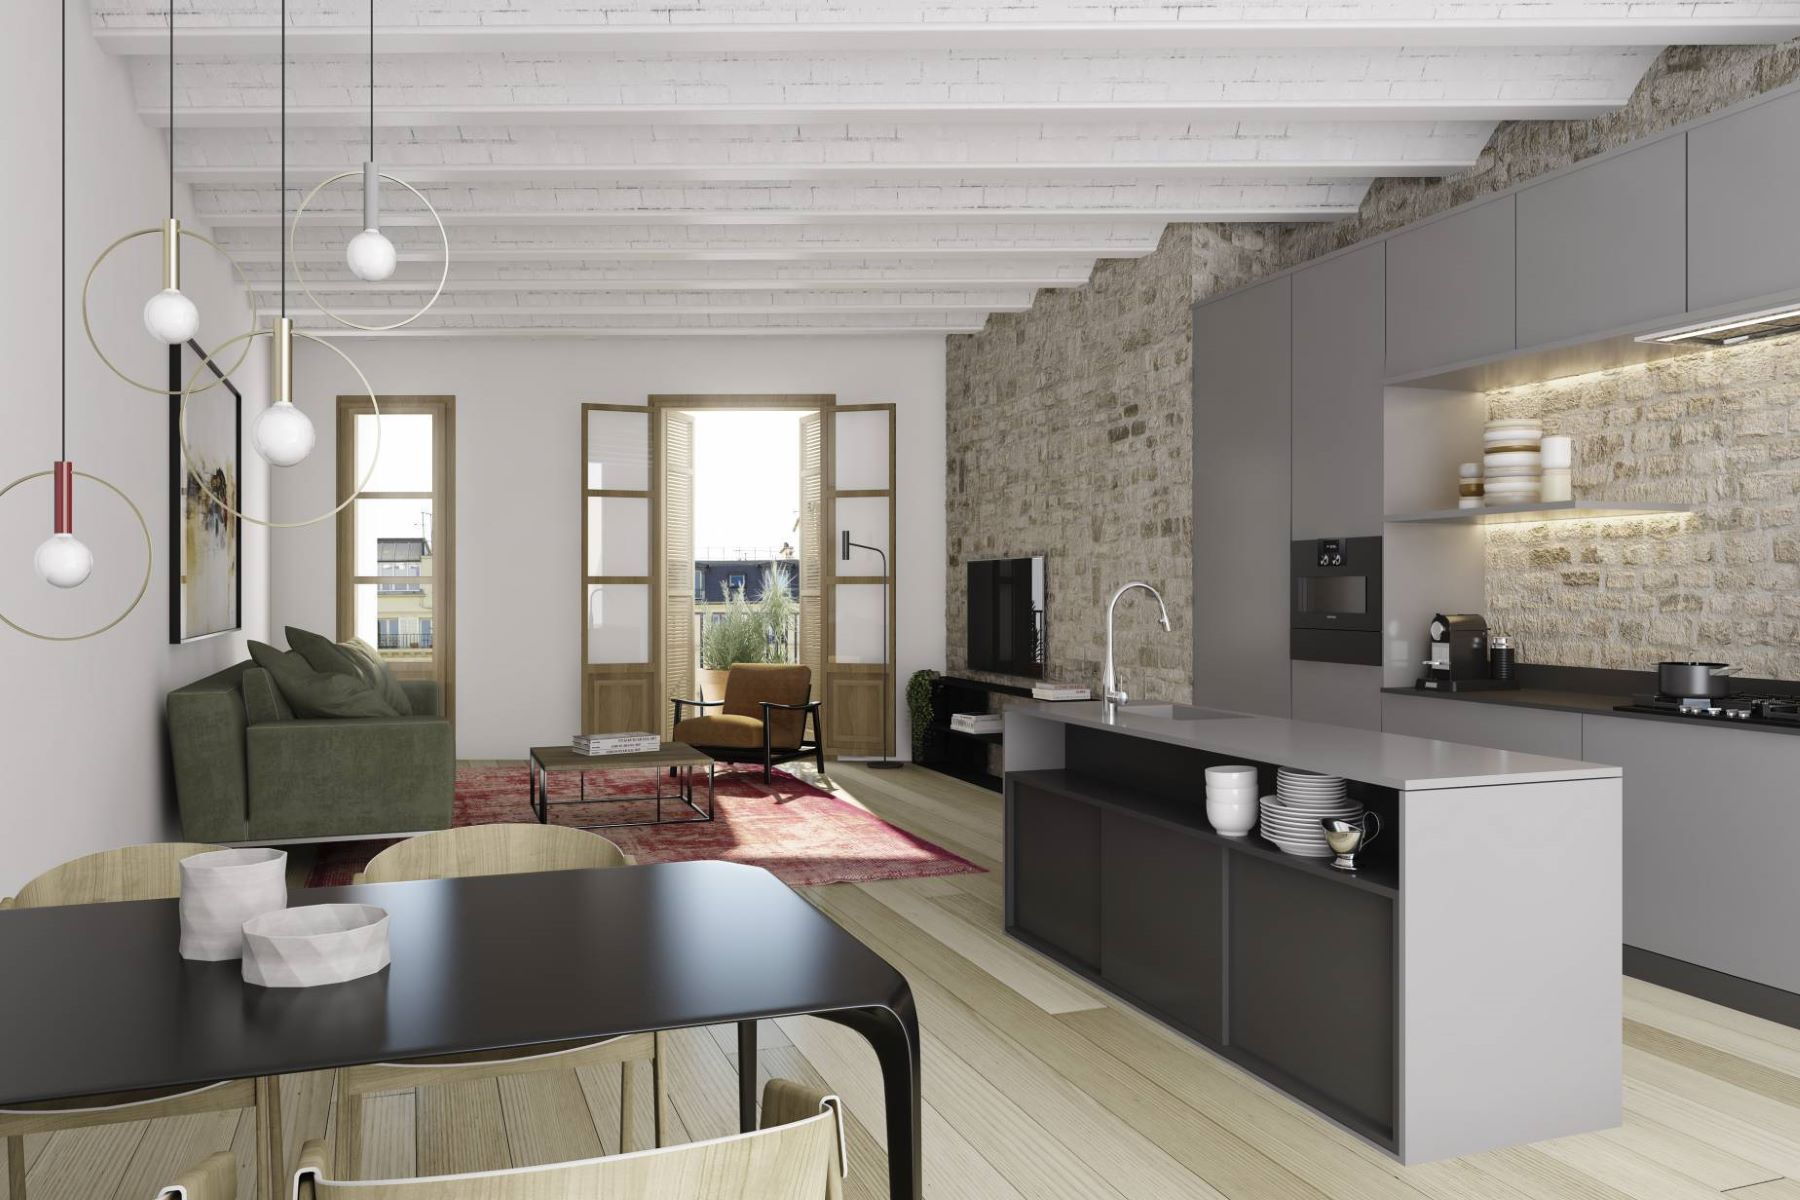 Apartment for Sale at Apartment in a Restored Unique Building in the Gothic Quarter Barcelona City, Barcelona, 08002 Spain